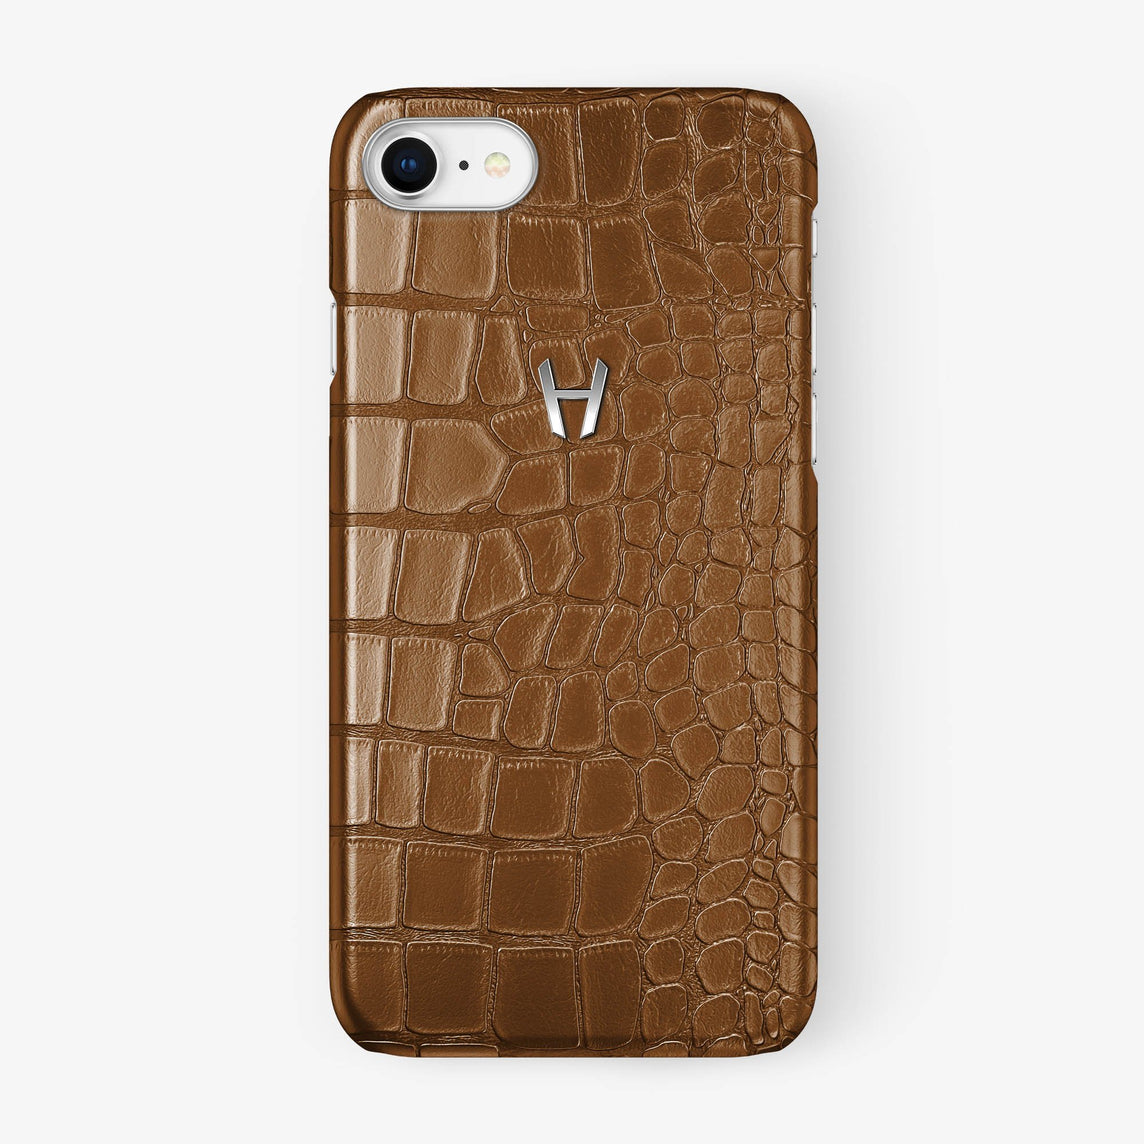 Alligator Case iPhone 7/8 | Cognac - Stainless Steel